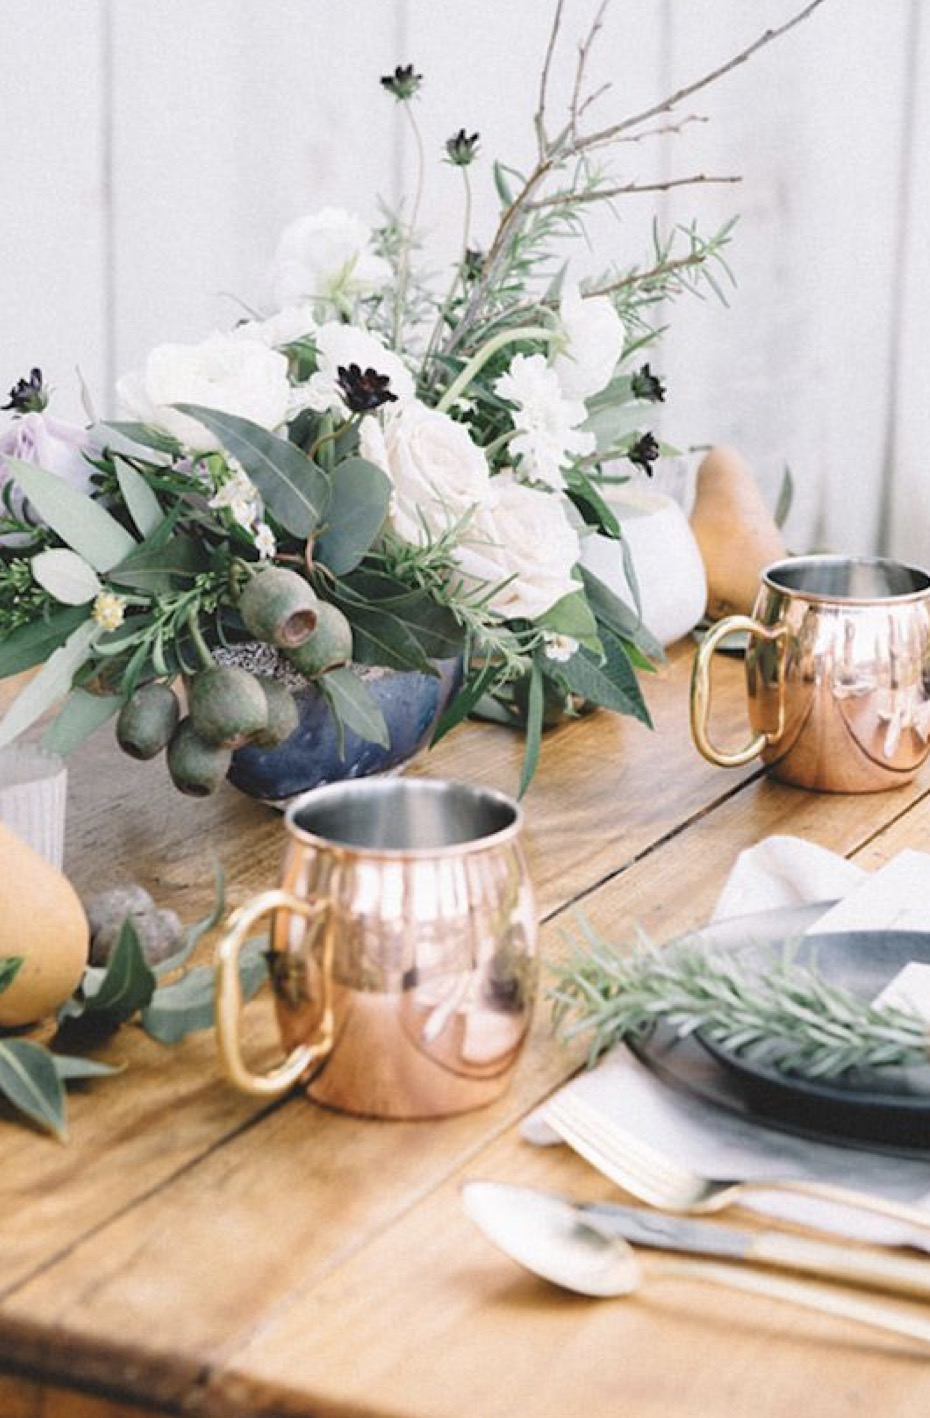 Inspiration photo for our floral arrangements for our big day.